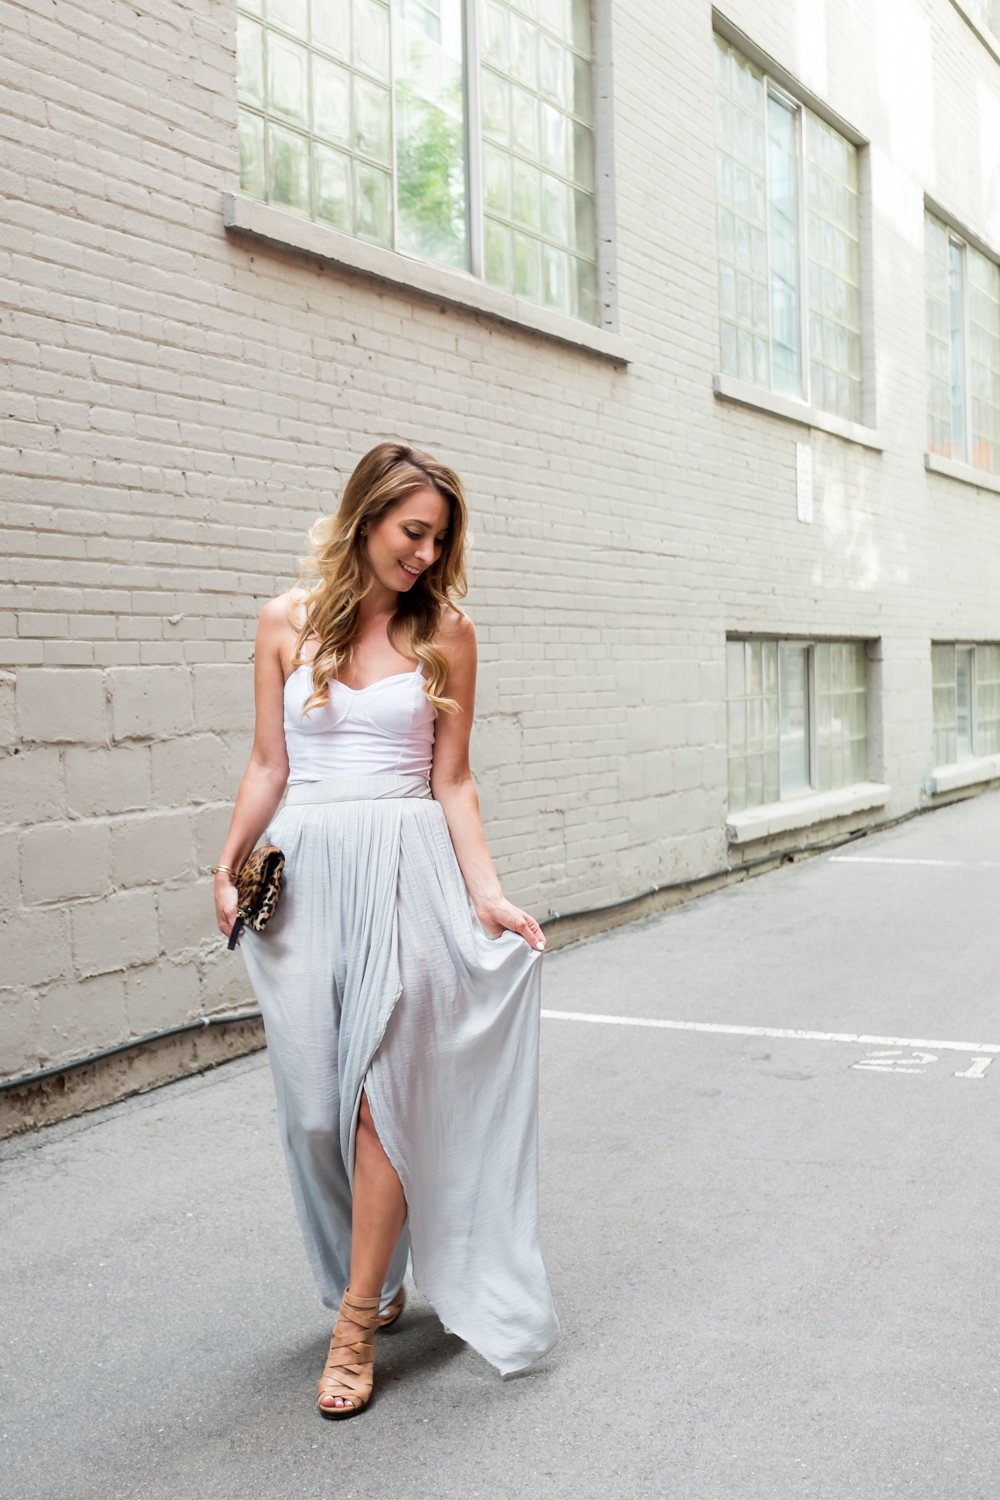 pearled grey pale blue zara maxi skirt outfit